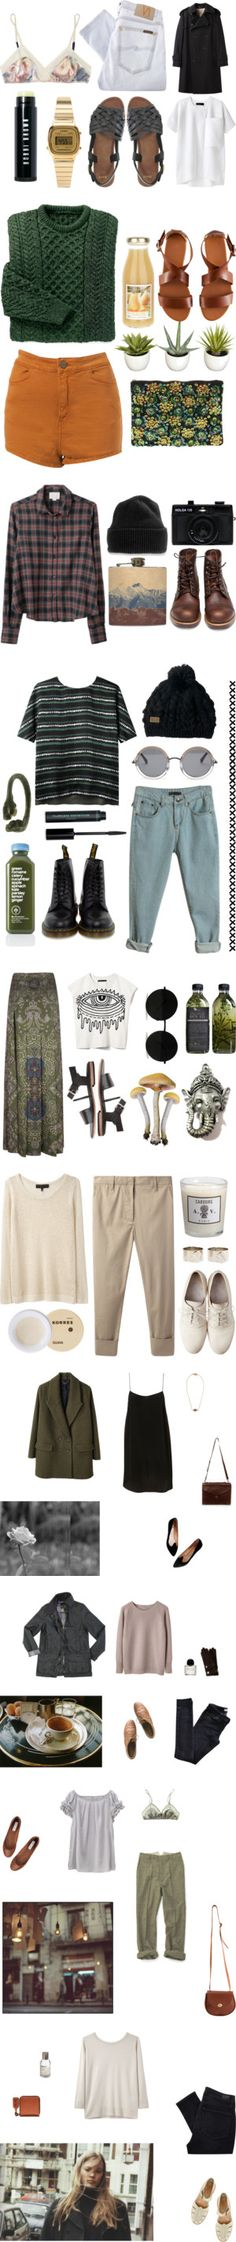 """Real-Life Nomad"" by natalieoffduty ❤ liked on Polyvore"